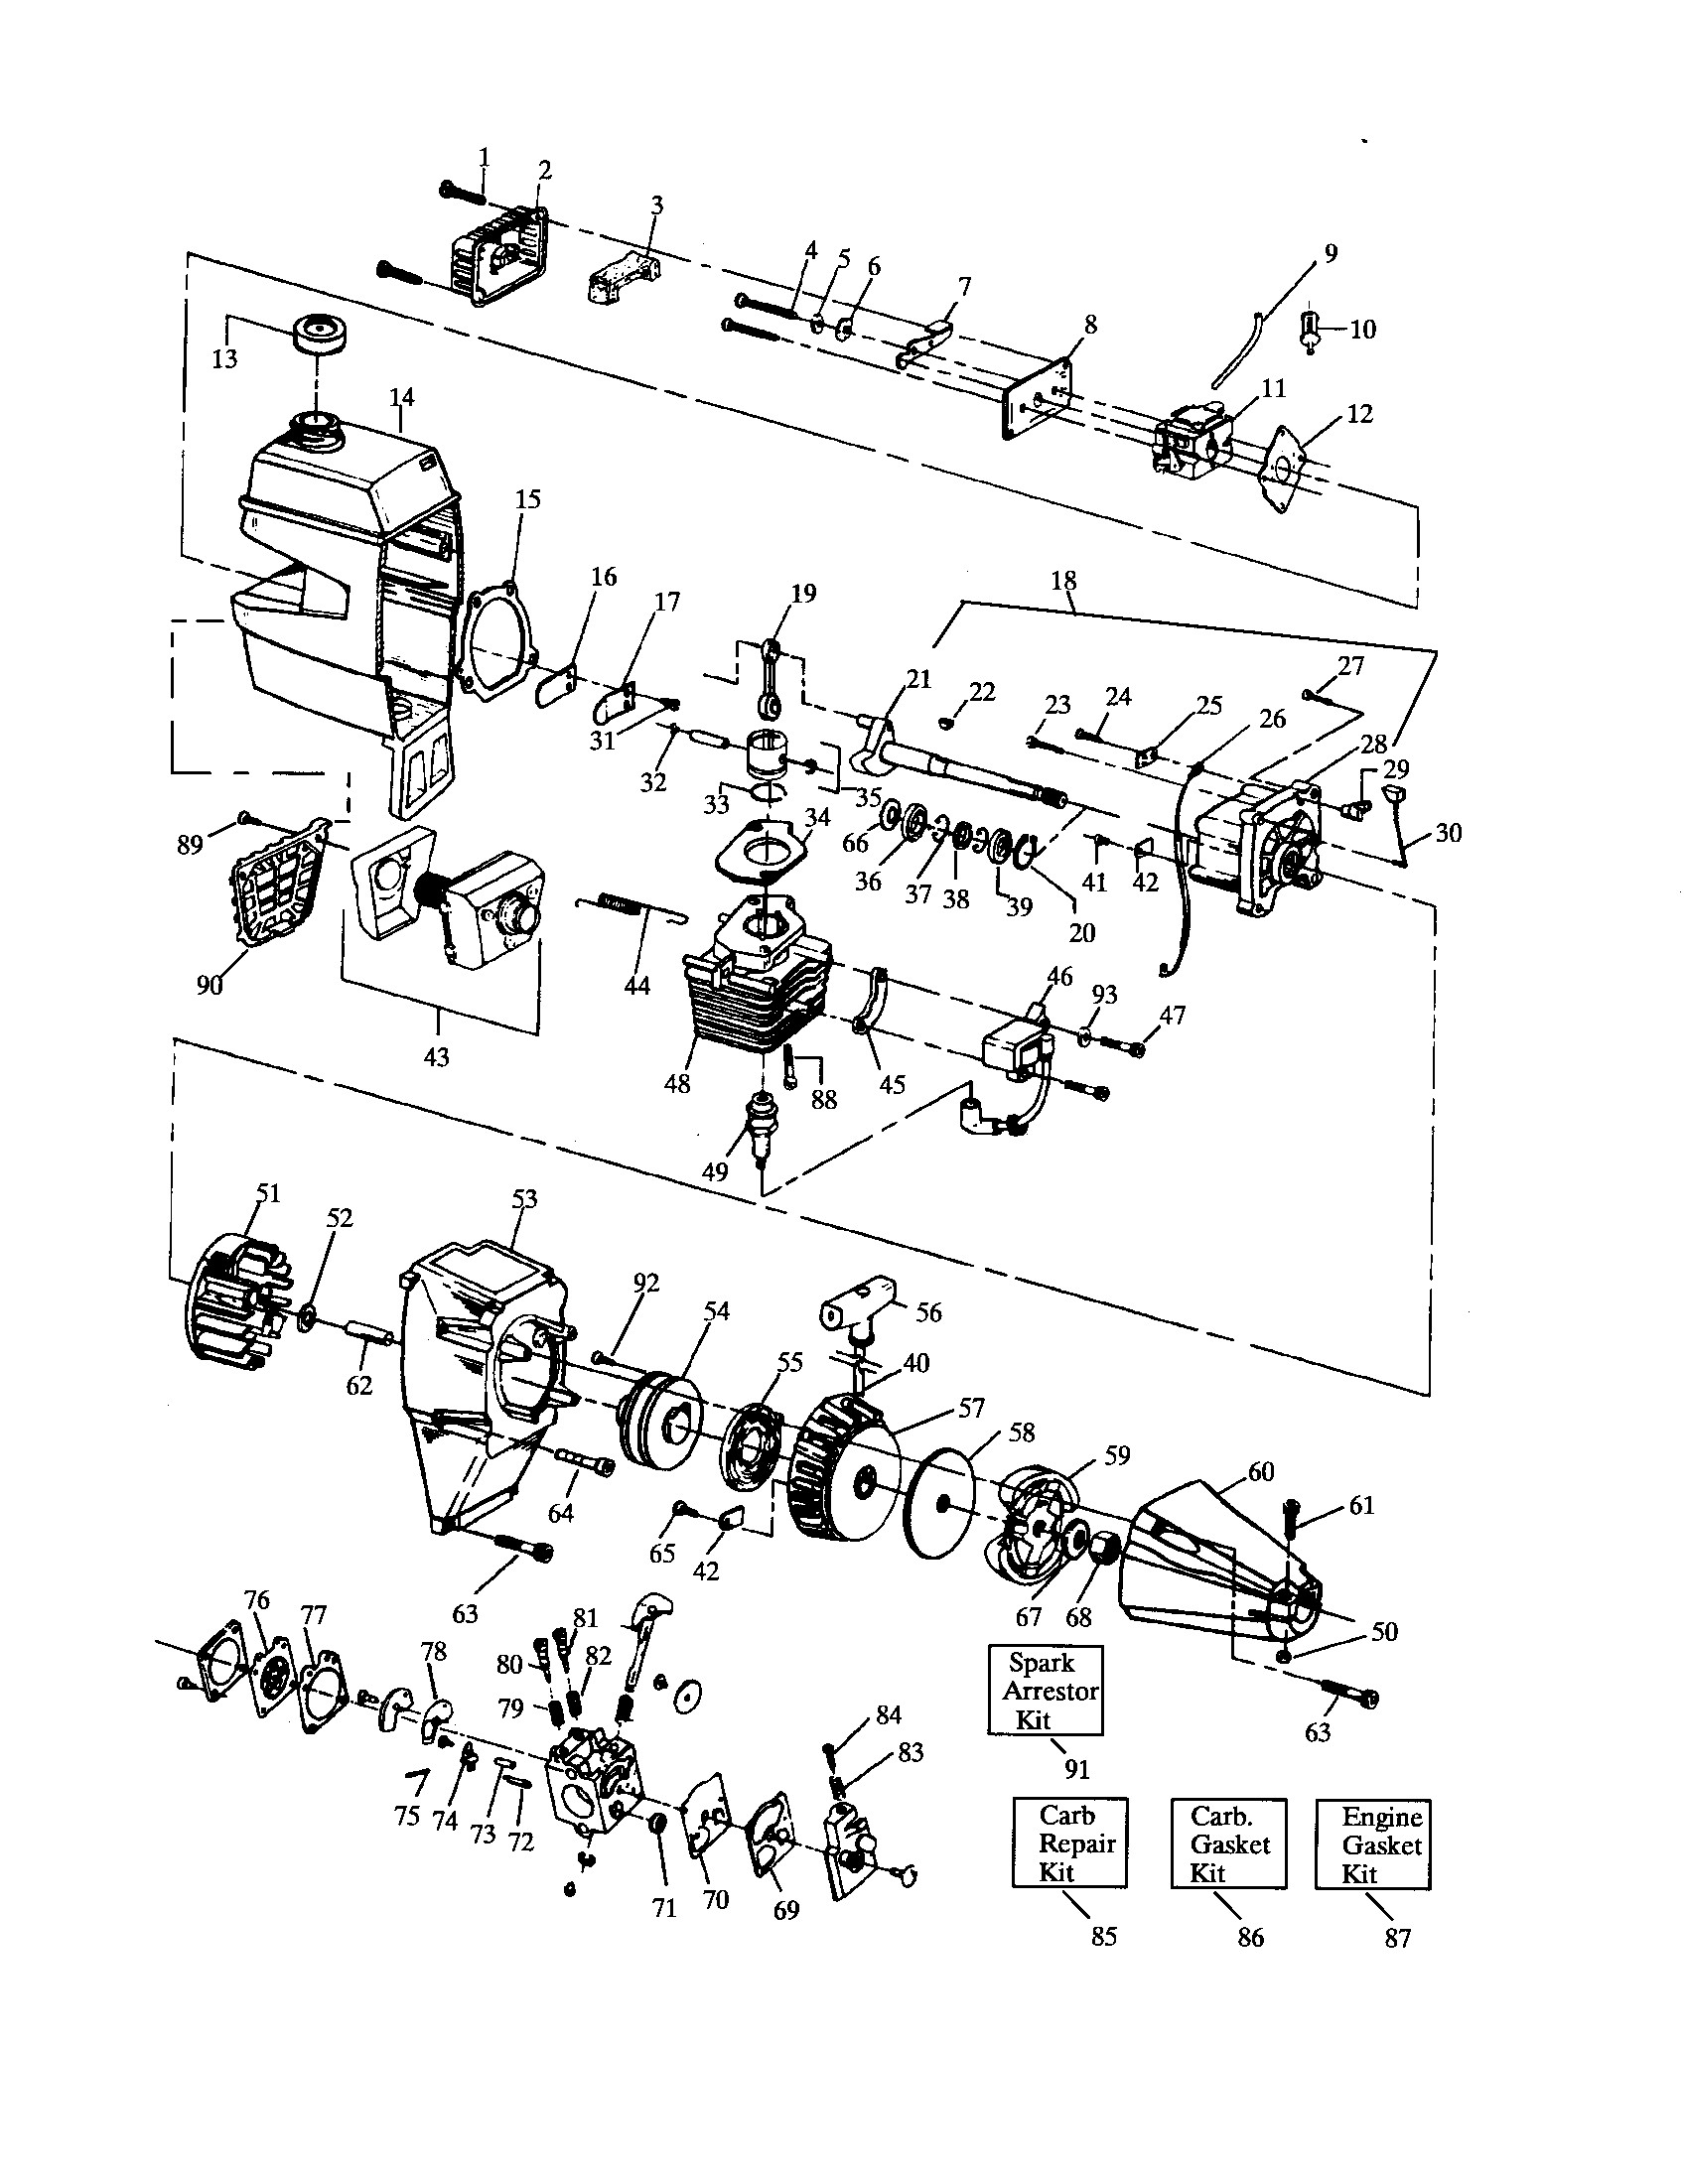 For Craftsman Lawn Tractor Wiring Diagram